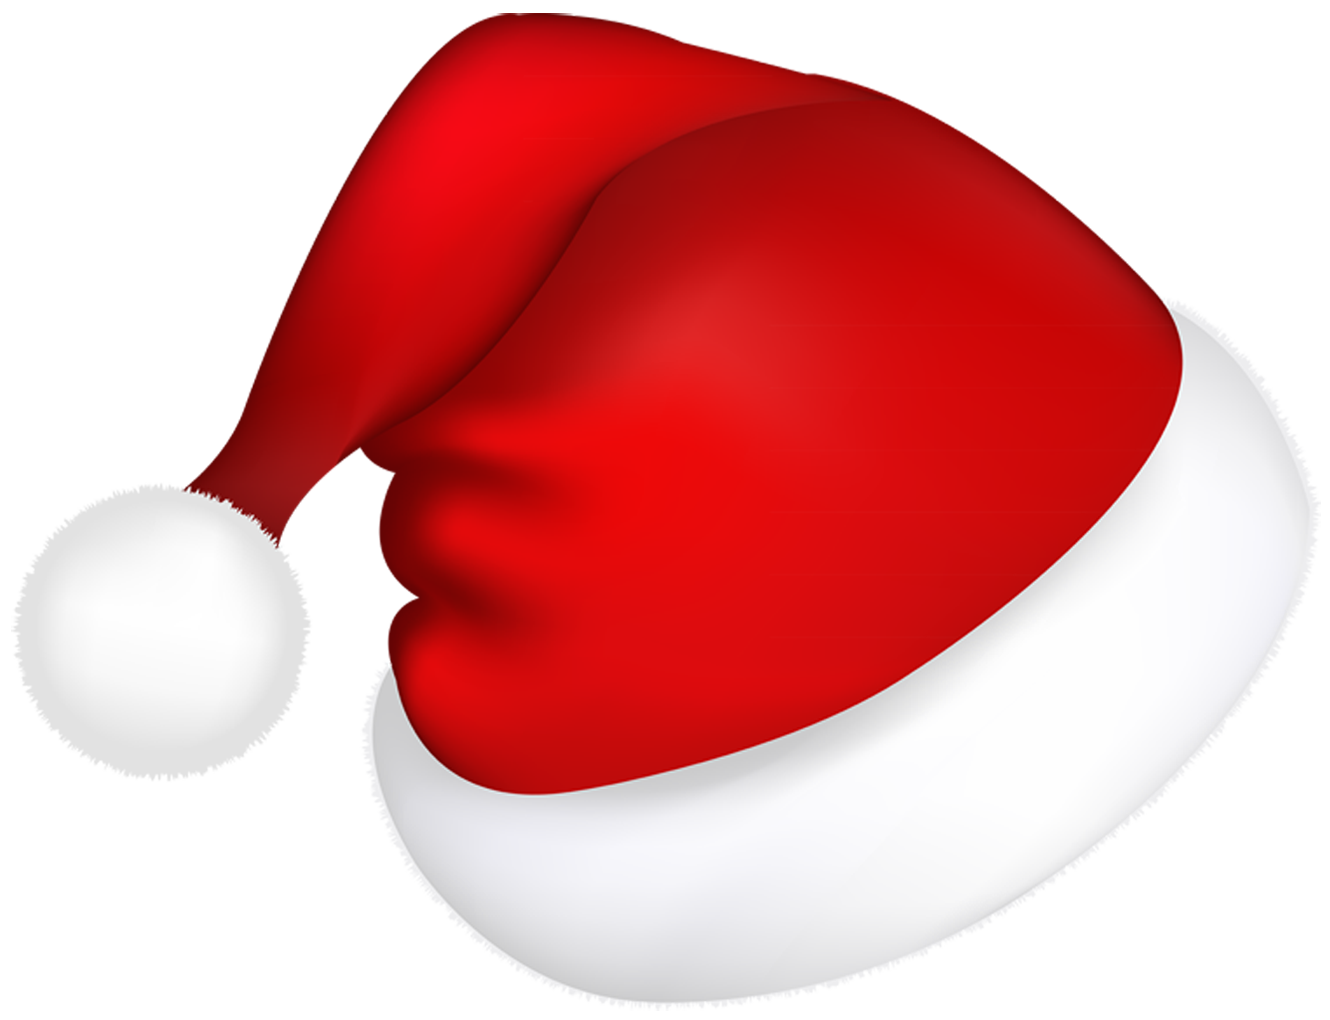 Png Format Images Of Christmas Hat image #19602